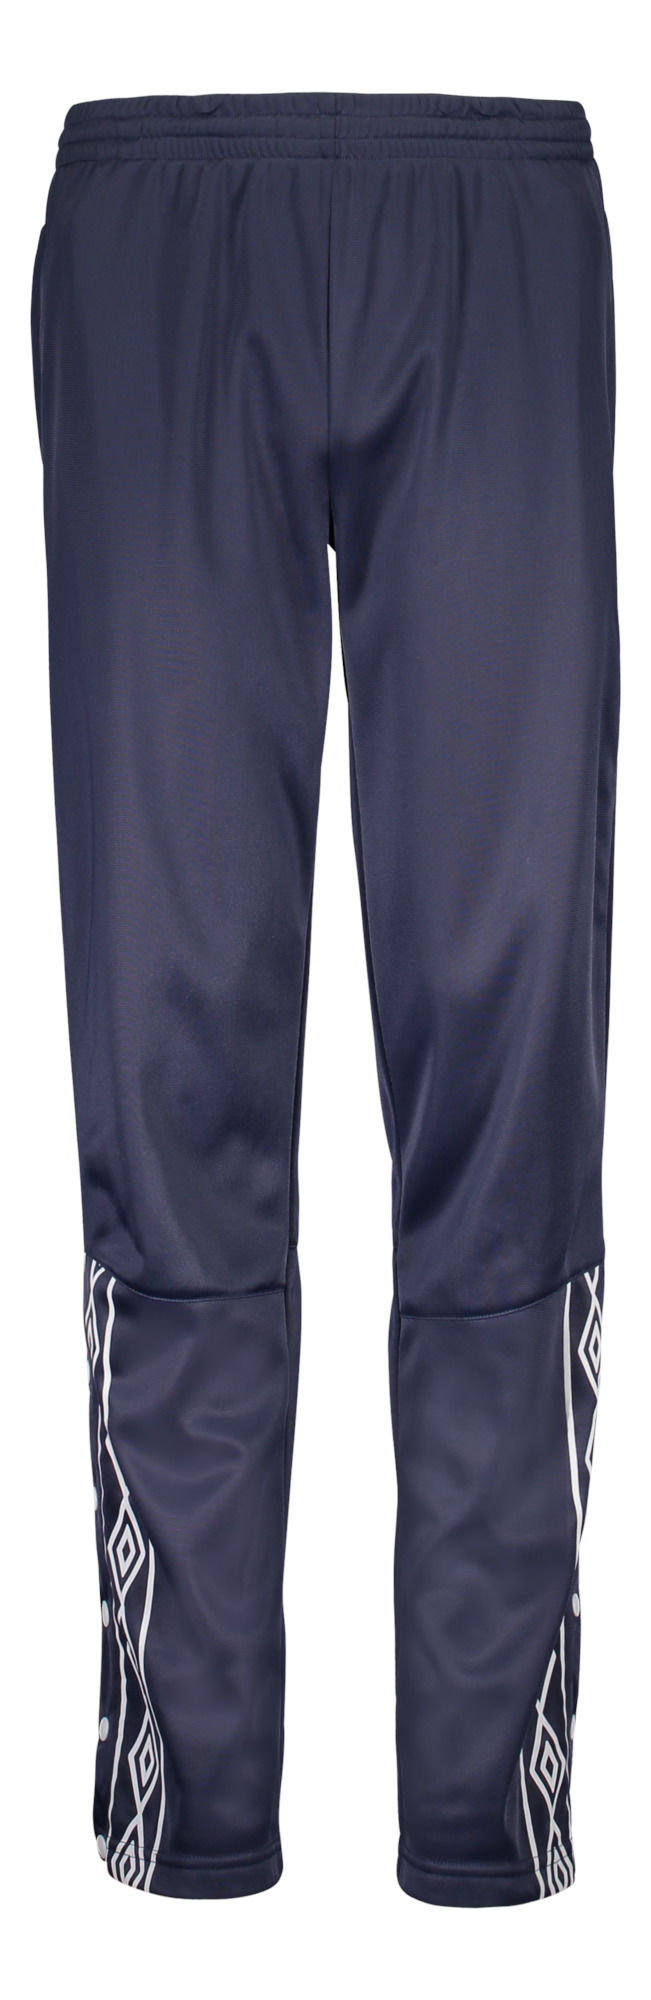 Umbro Pace Track Pant JR